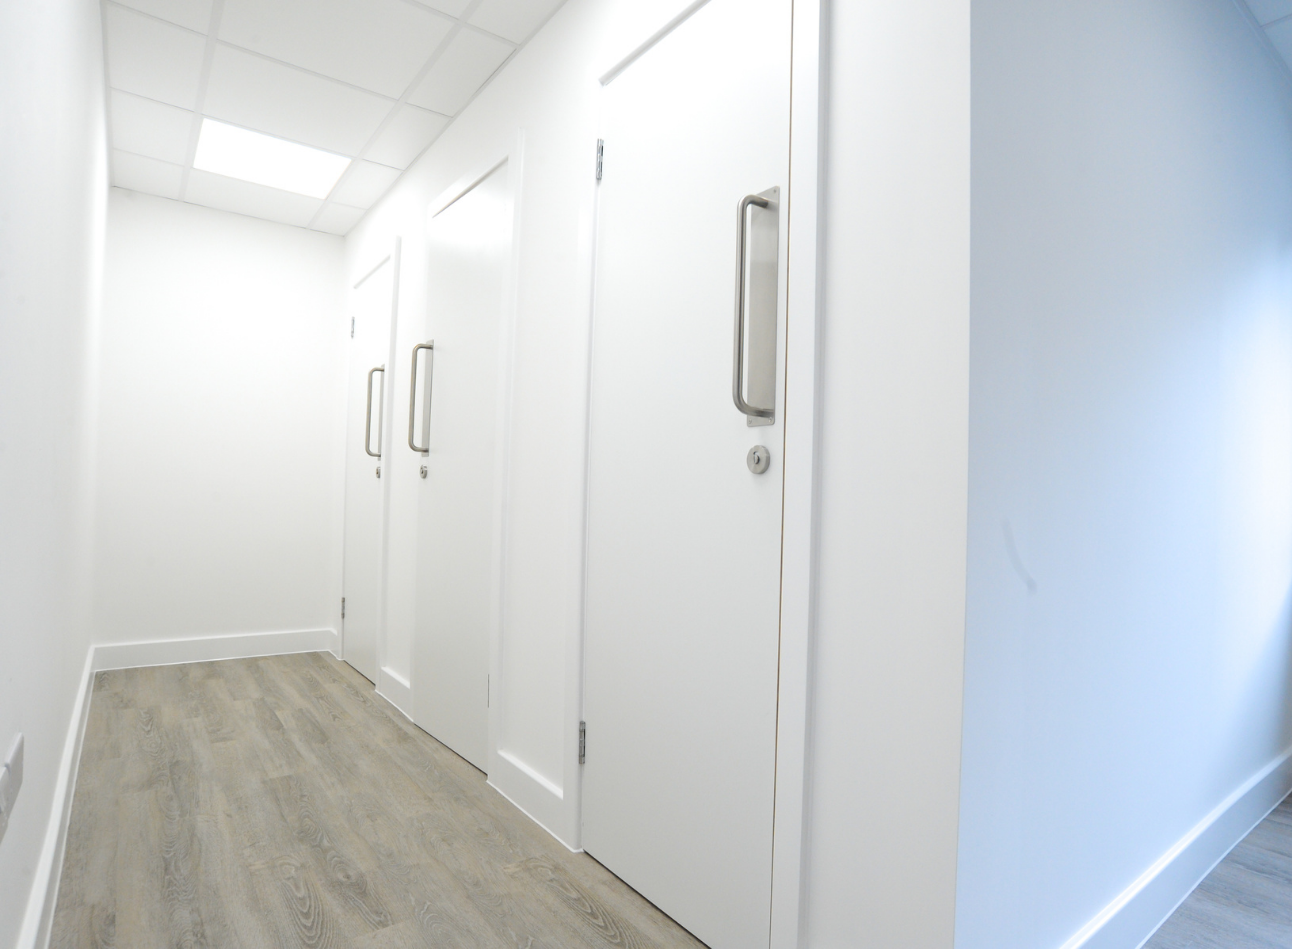 Settle Group Cubicles   Case Study   Commercial Washrooms